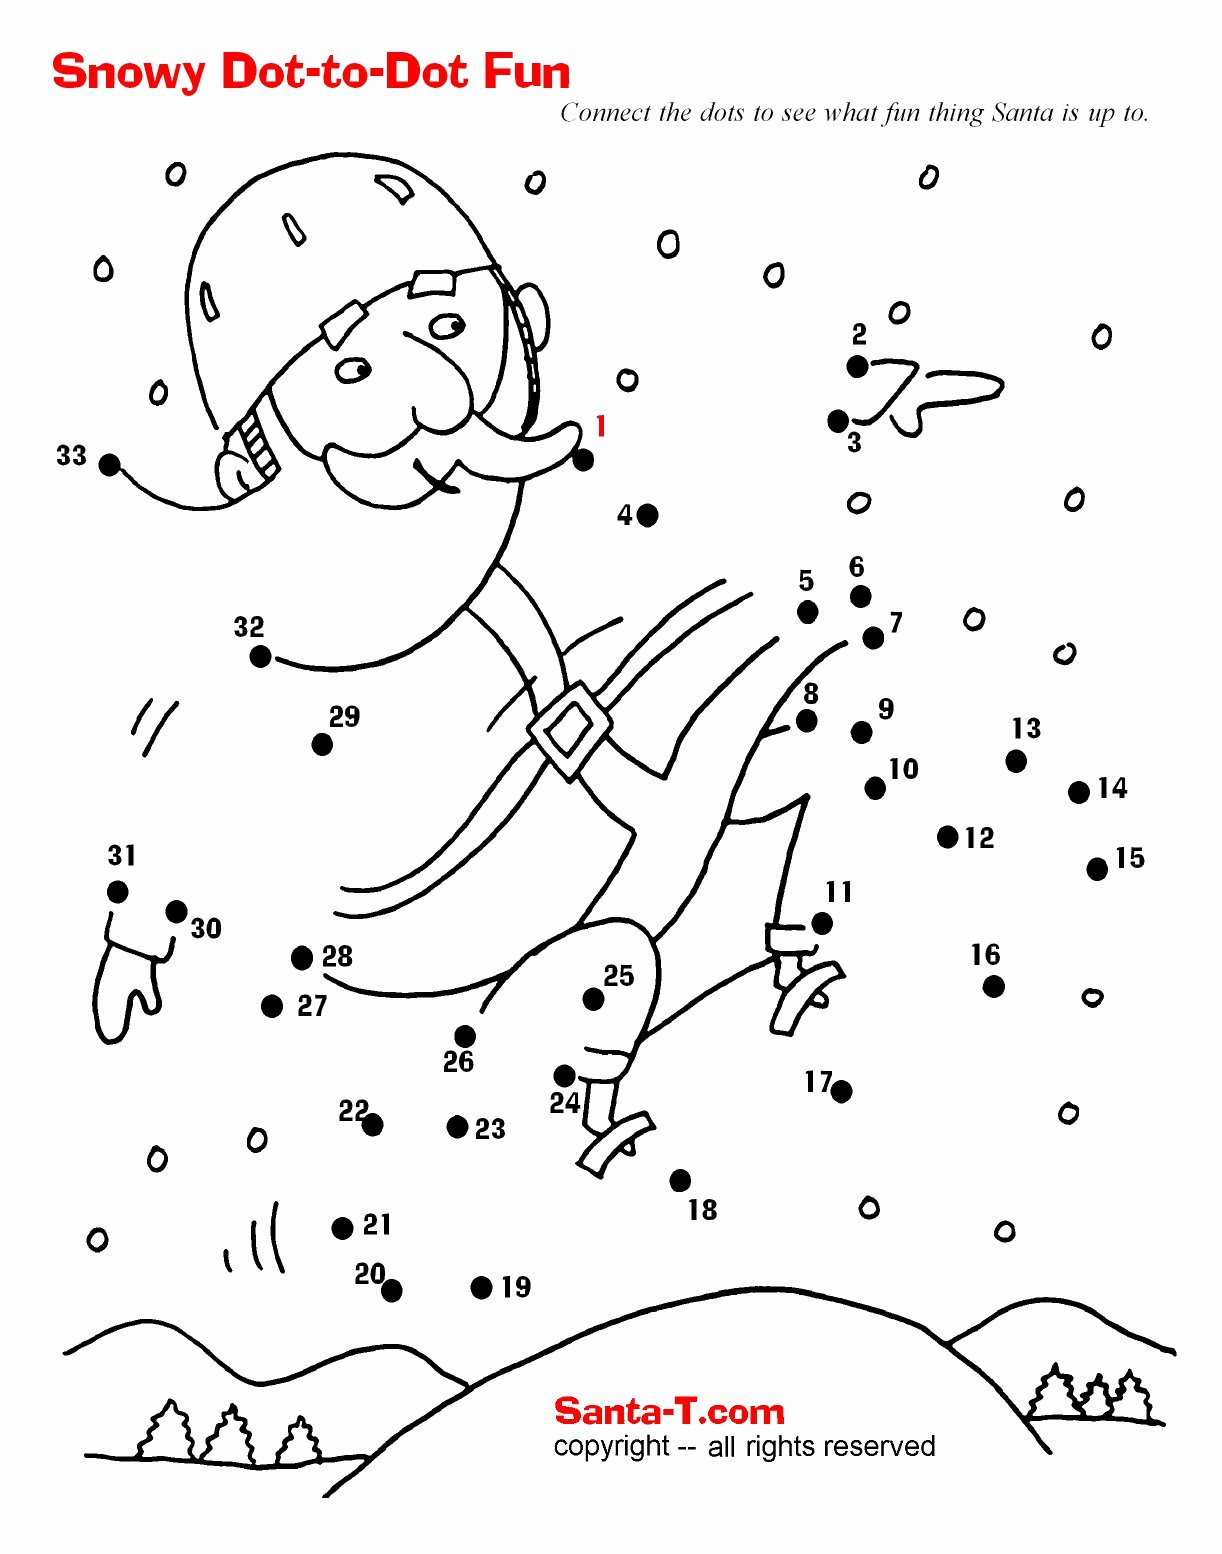 Connect the Dots Christmas Printables Fresh Awesome Connect the Dots Coloring Pages for Teens